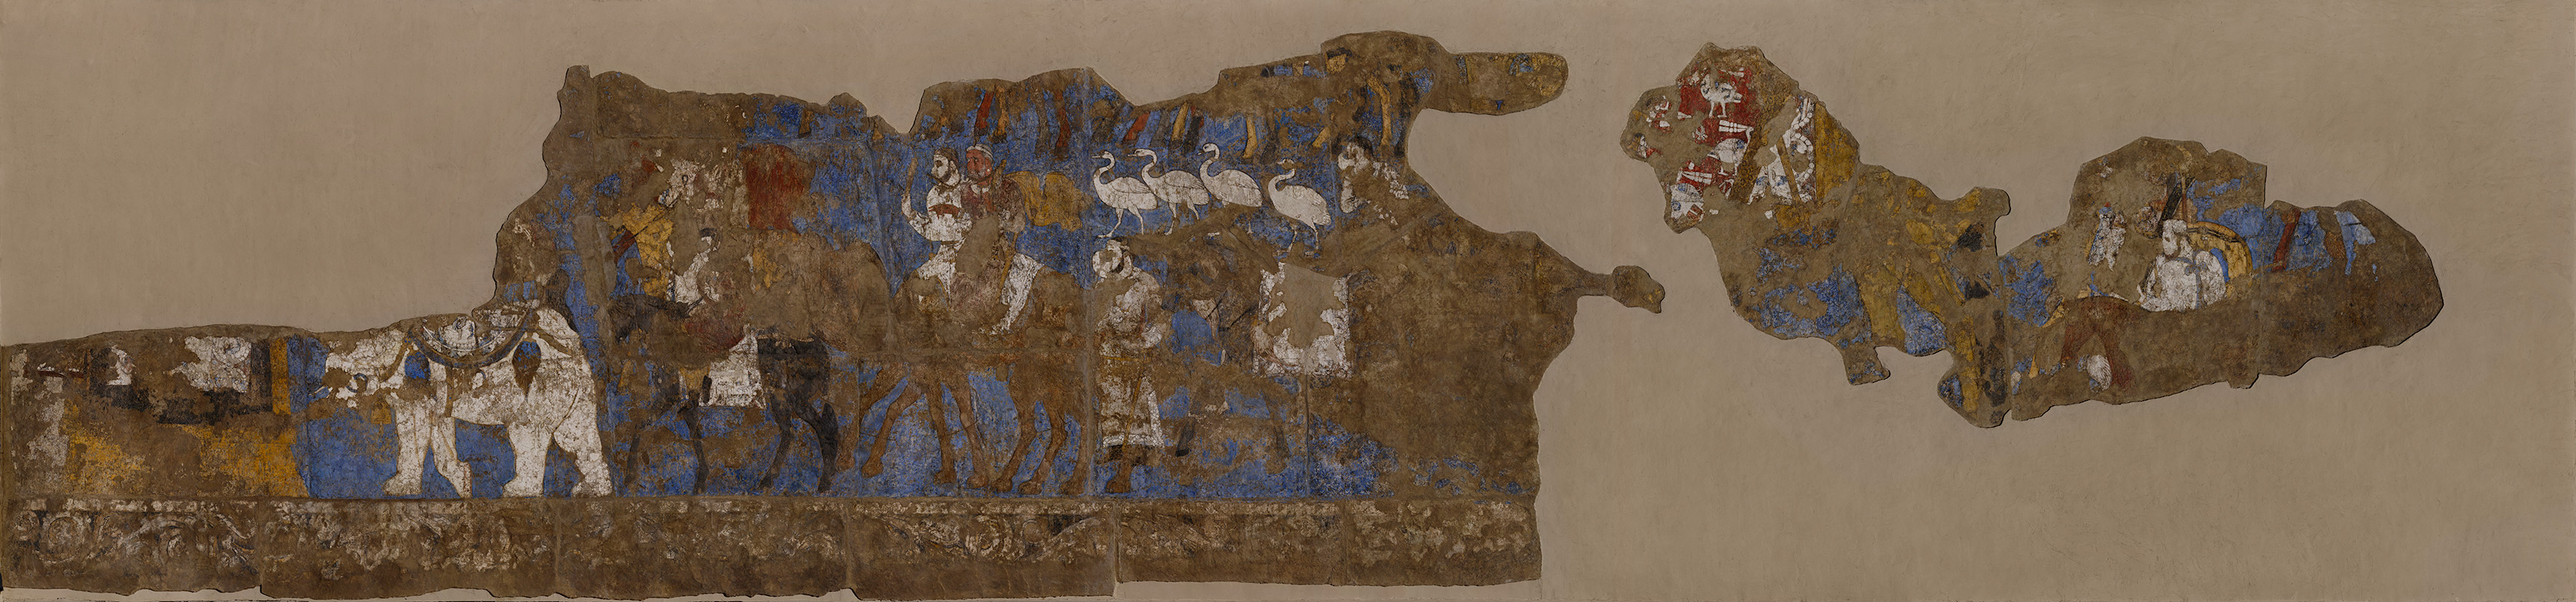 Fragmentary painting from the southern wall of the Hall of the Ambassadors in Afrasiab